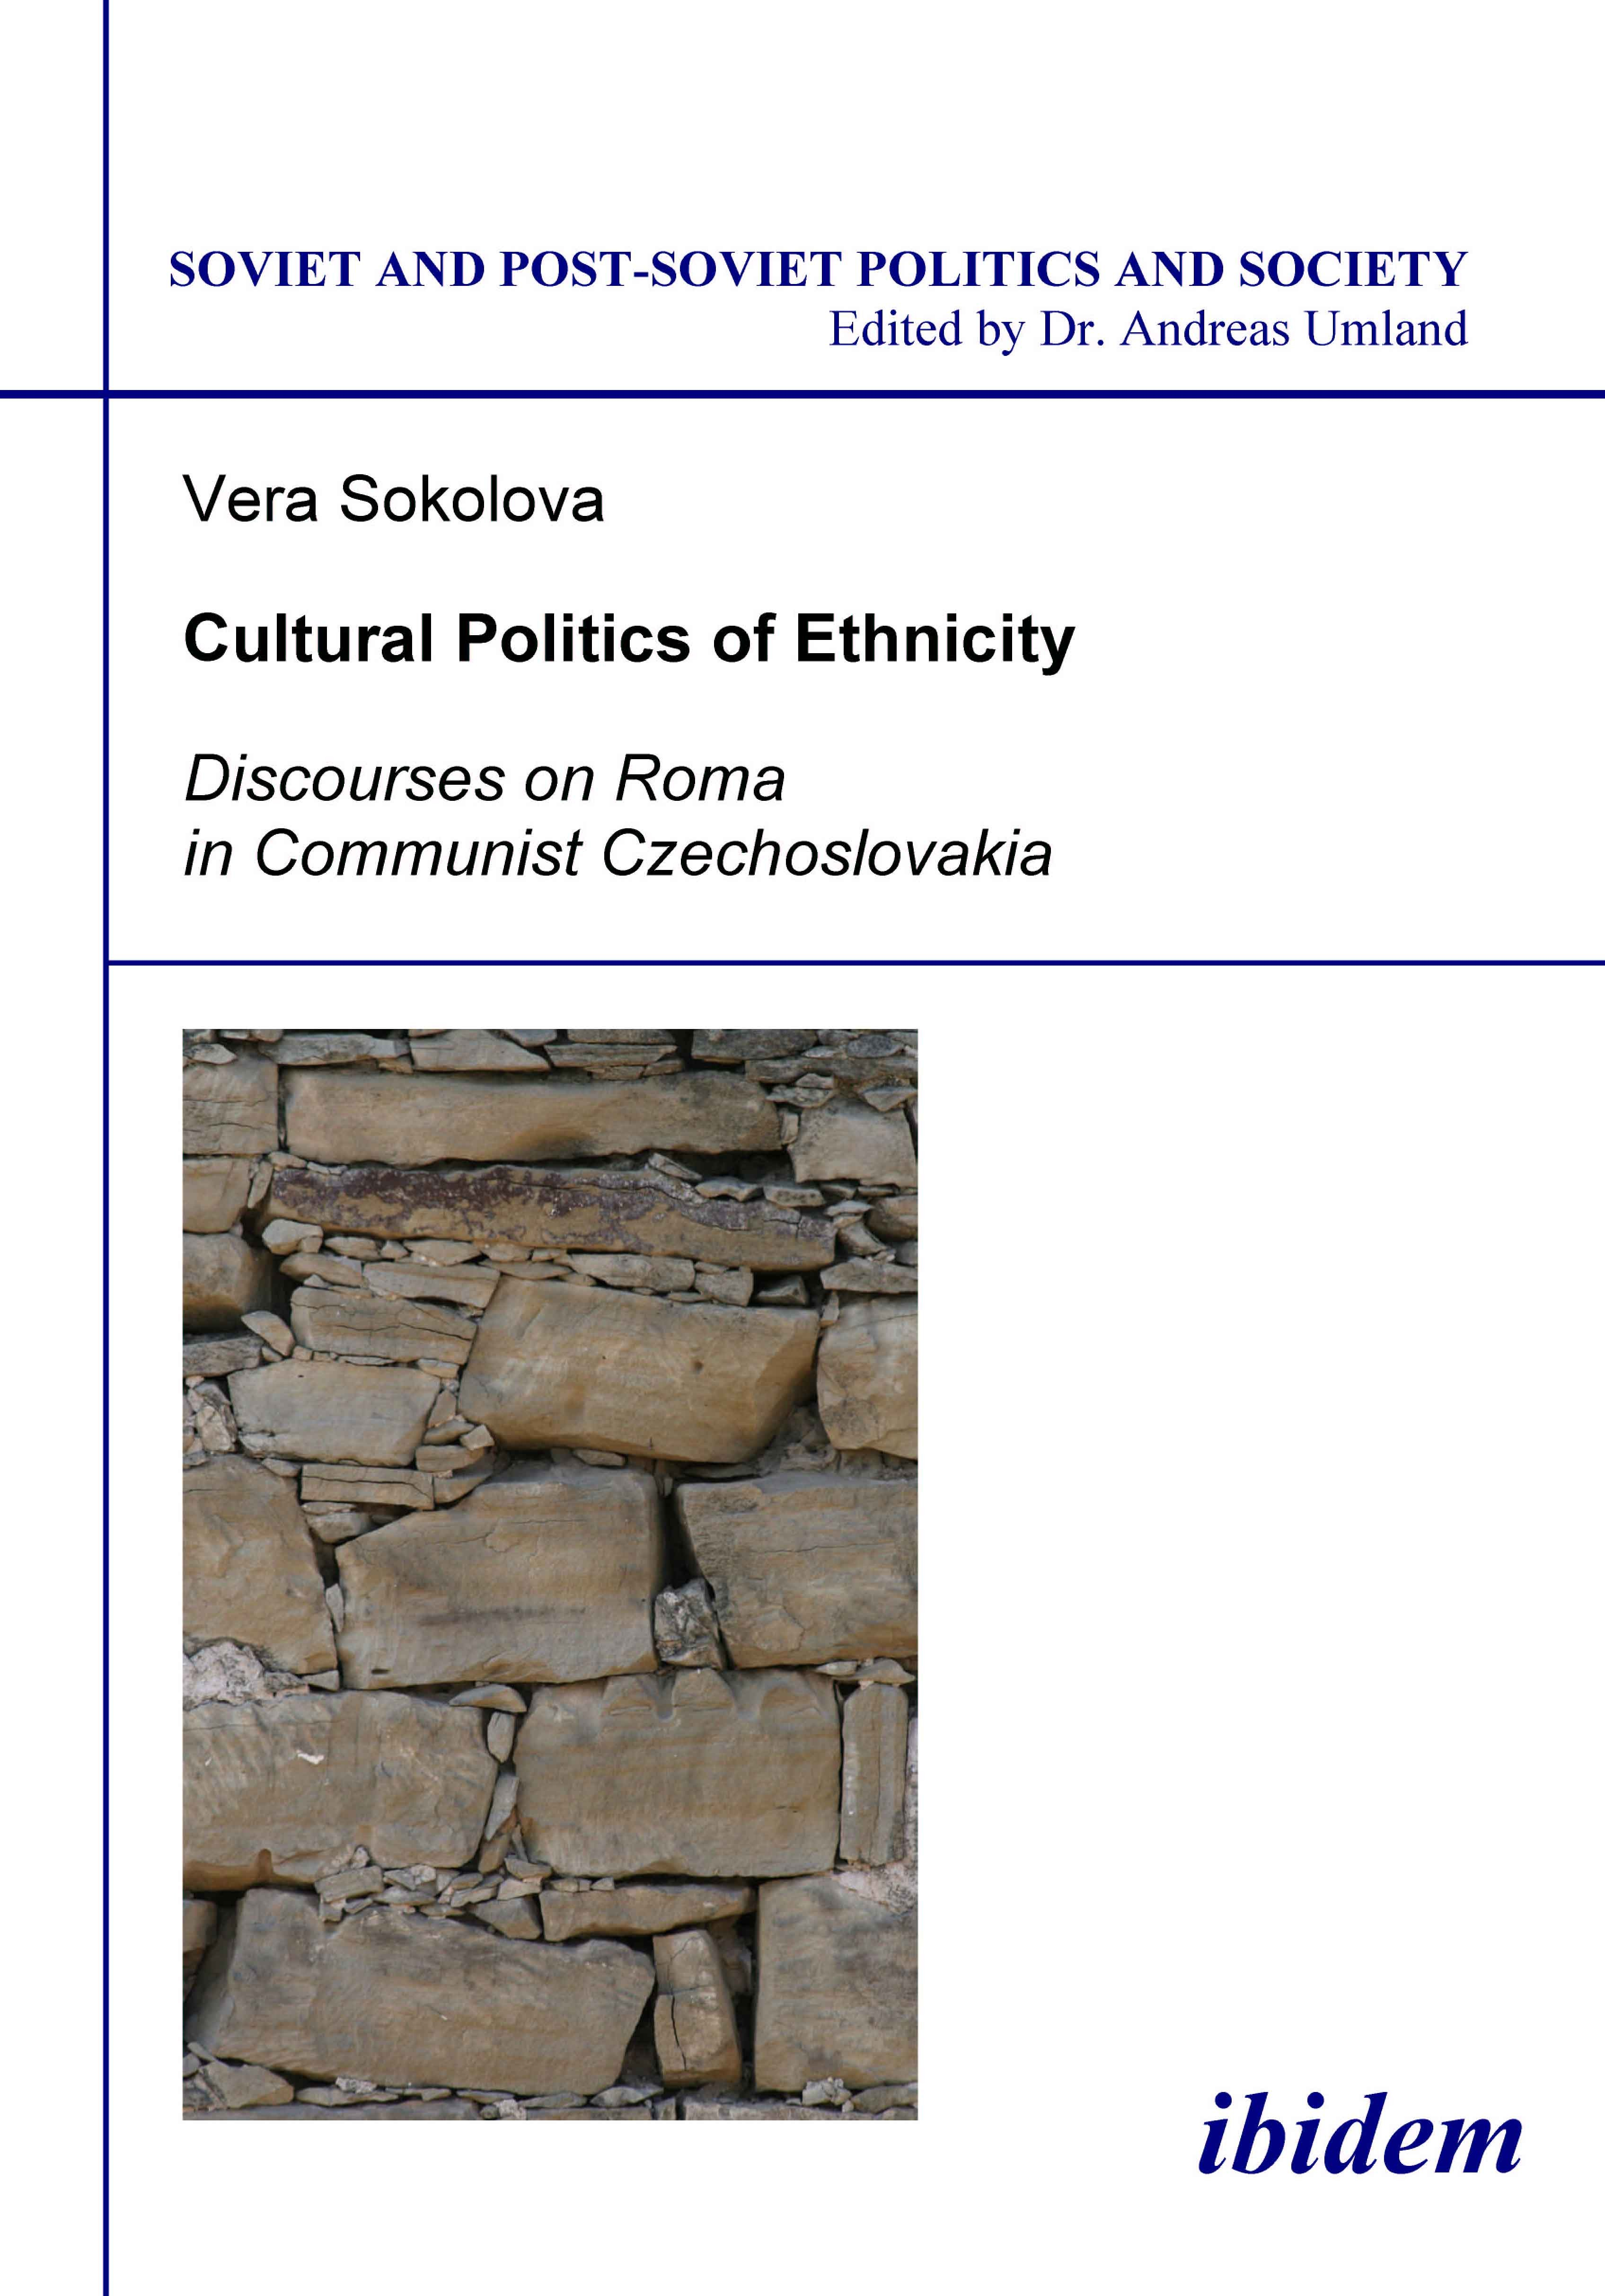 Cultural Politics of Ethnicity